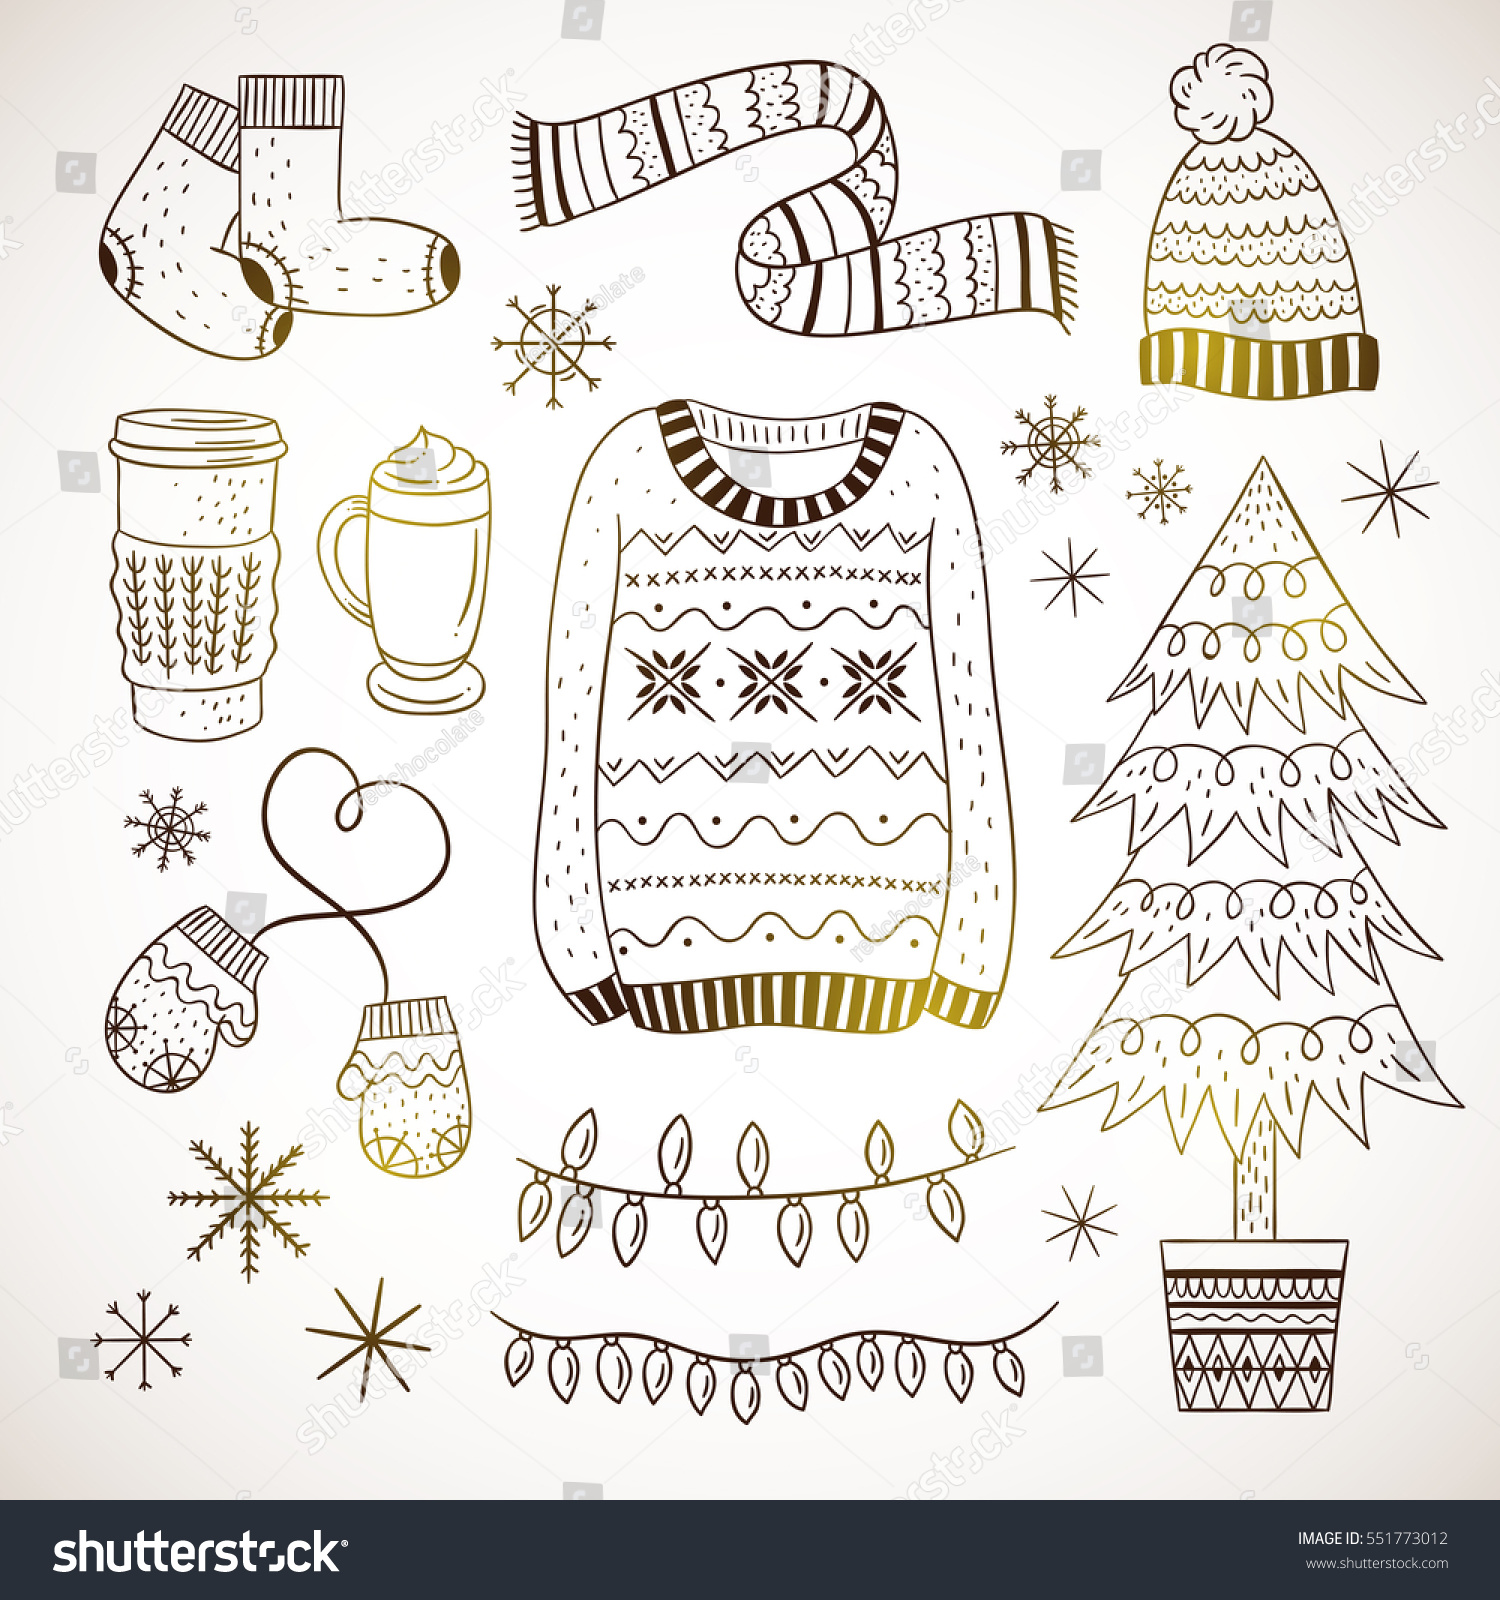 Outline Winter Elements Hand Drawn Illustrations Stock ...